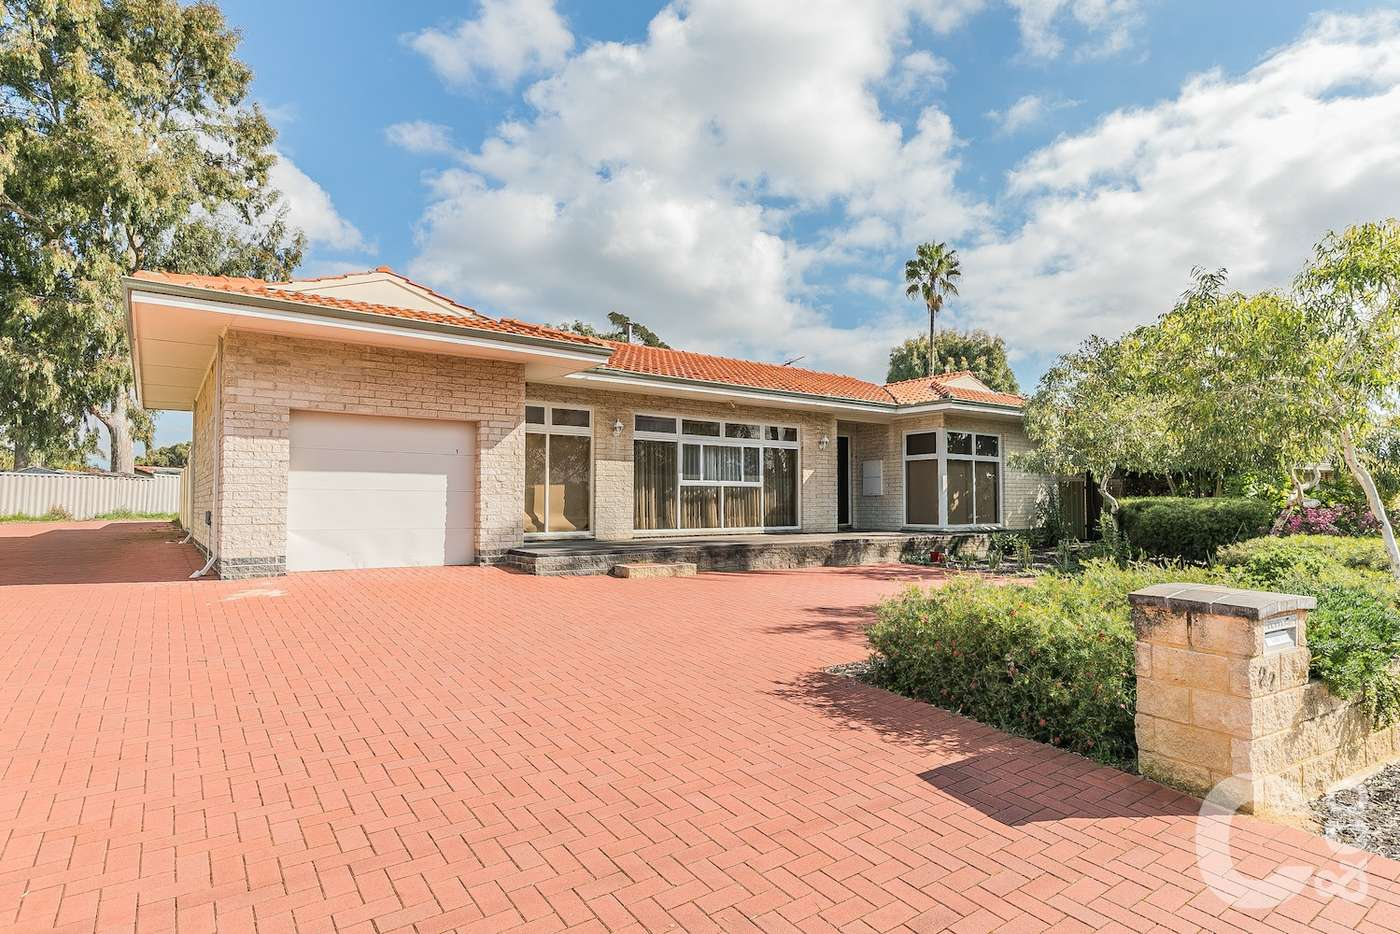 Main view of Homely house listing, 1/22 Brookes Way, Calista WA 6167